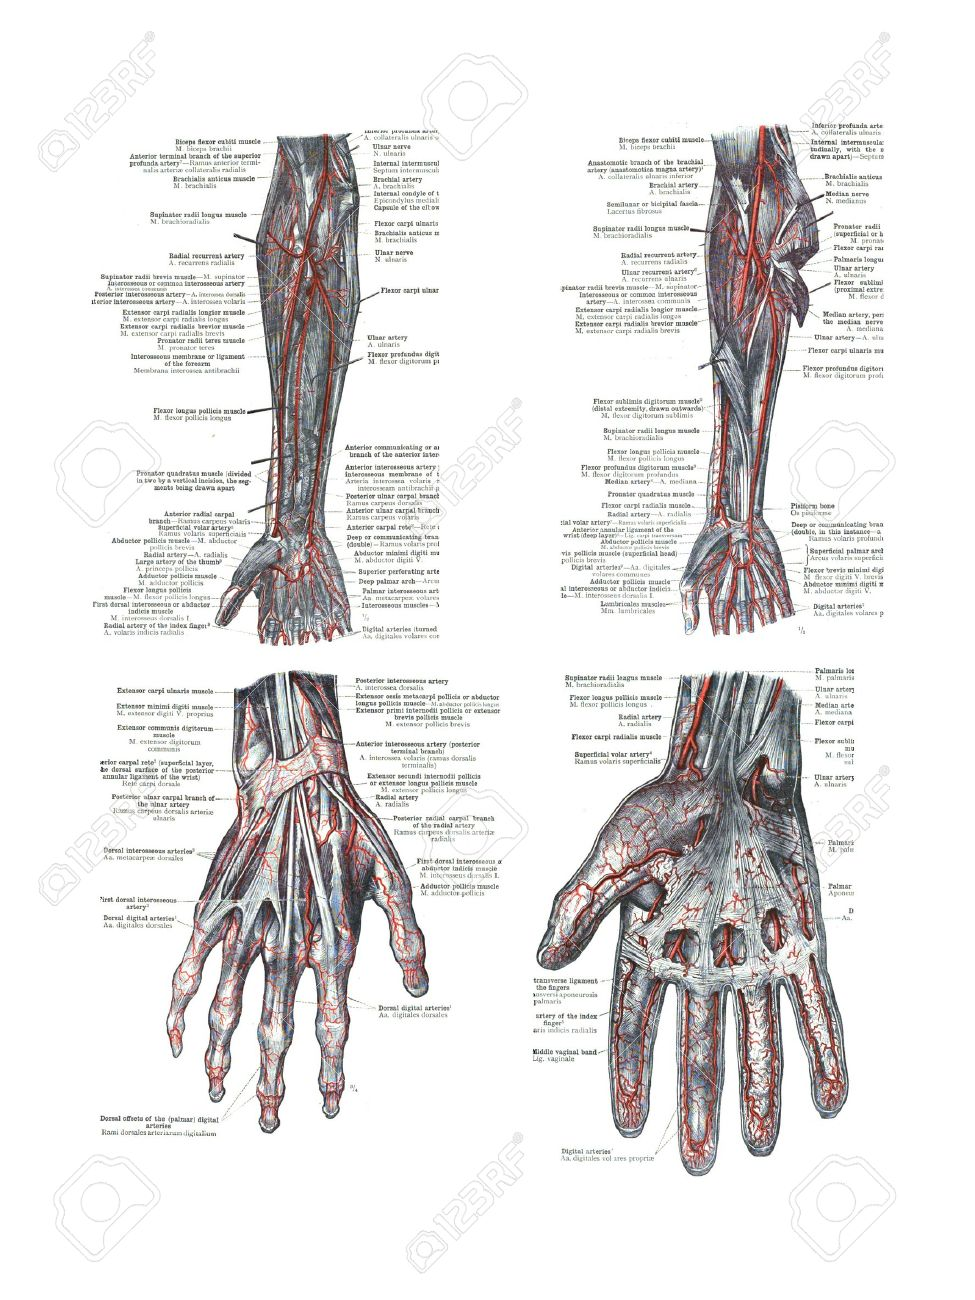 4 Views Of The Human Hand And Arm From An Atlas Of Human Anatomy ...